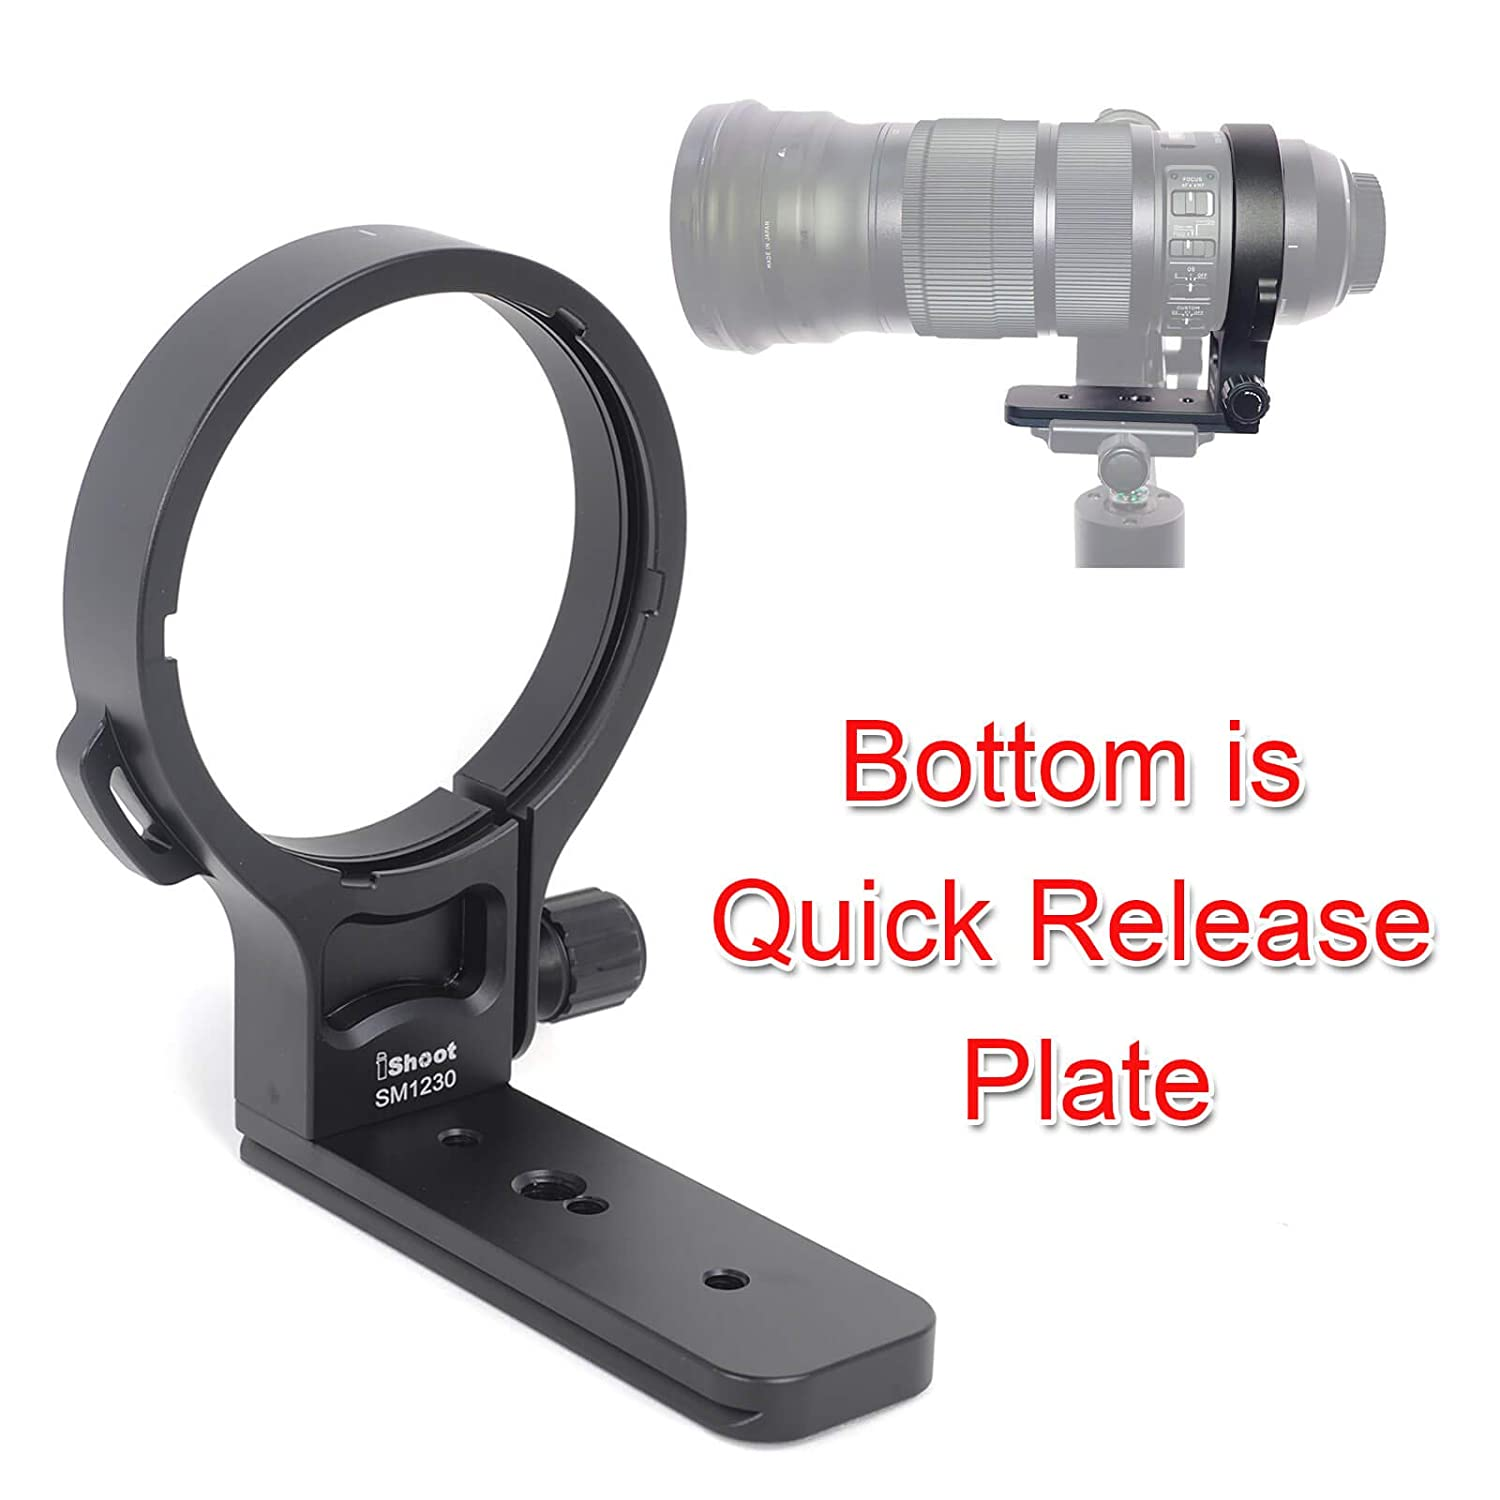 Built-in Quick Release Plate Compatible with Tripod Ball Head of Arca-Swiss PMG BENRO Fit iShoot Camera Lens Collar Bracket for Sigma 120-300mm f//2.8 DG OS HSM Sports Lens Tripod Mount Ring